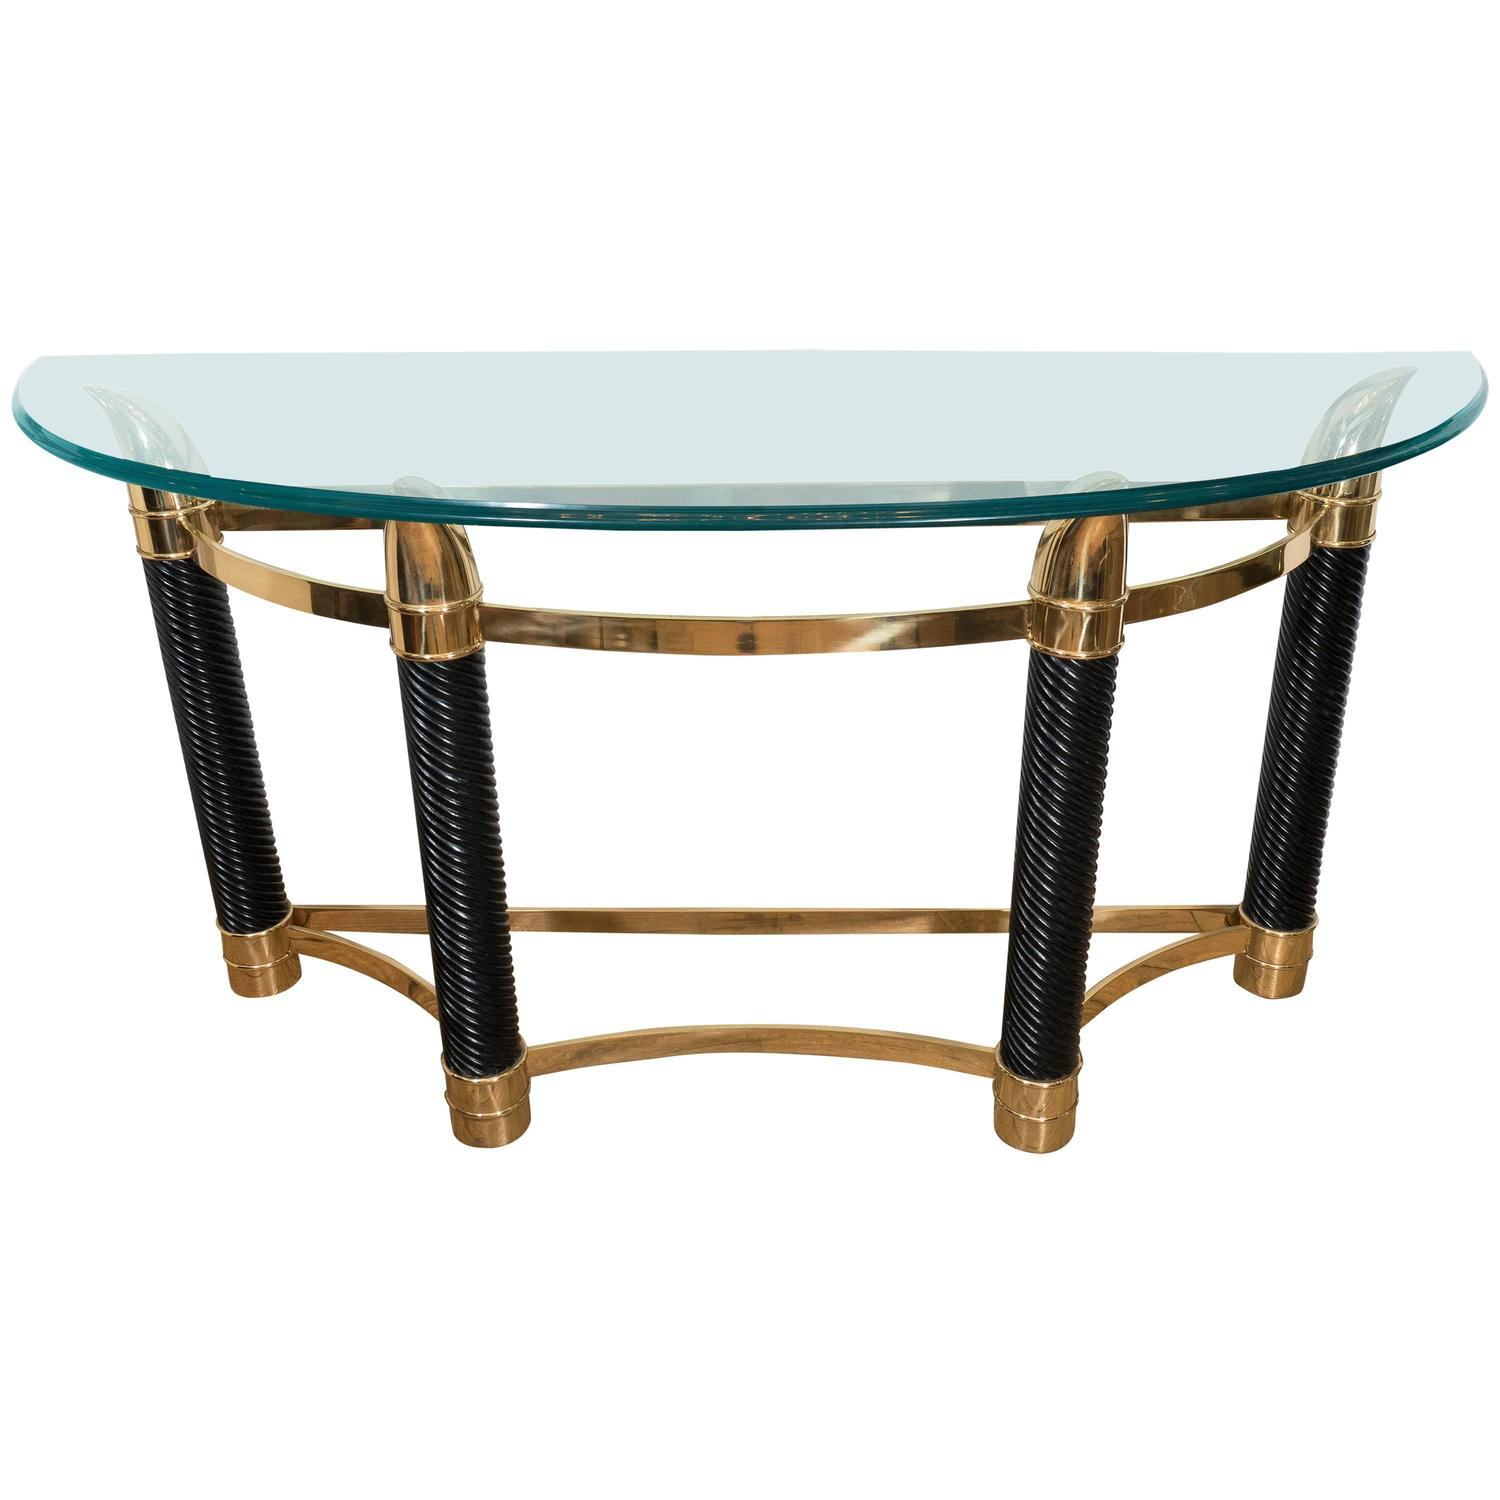 Italian Mezza Luna Console Table with Horn Shaped Base and Beveled